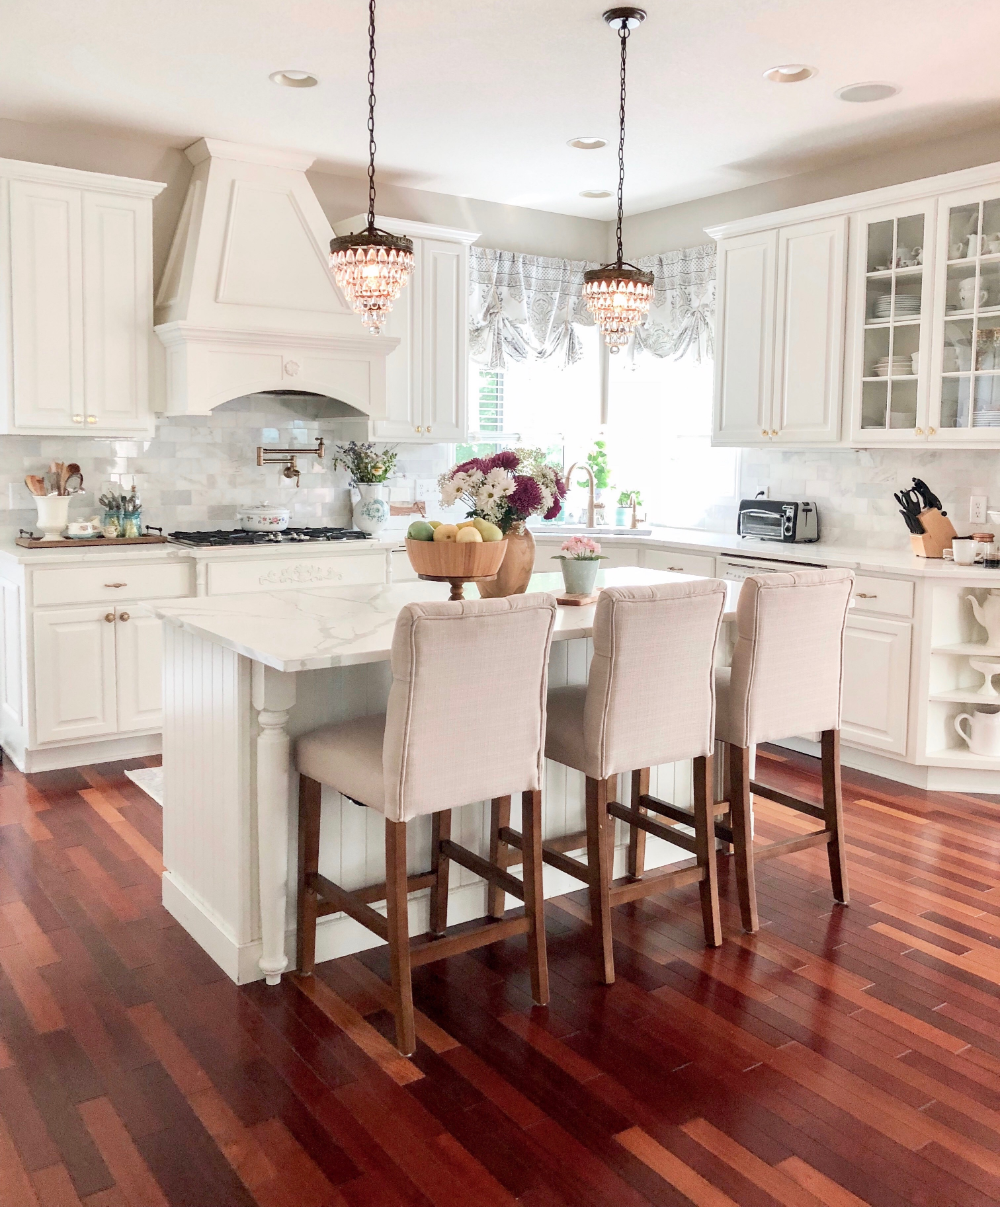 Kitchens With White Cabinets And Brazilian Cherry Floors Google Search In 2020 Wood Floor Kitchen Cherry Hardwood Flooring Cherry Wood Floors